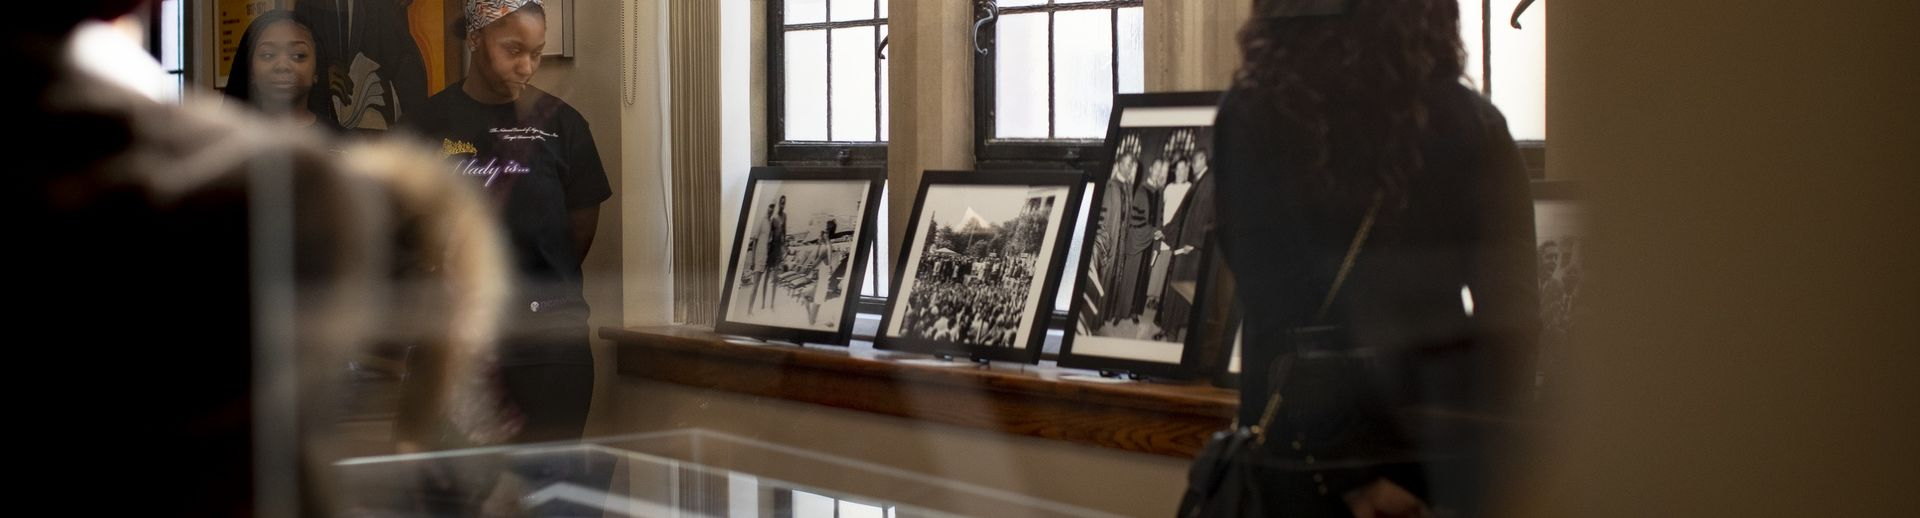 Students view a collection at the Charles Blockson Collection on campus.